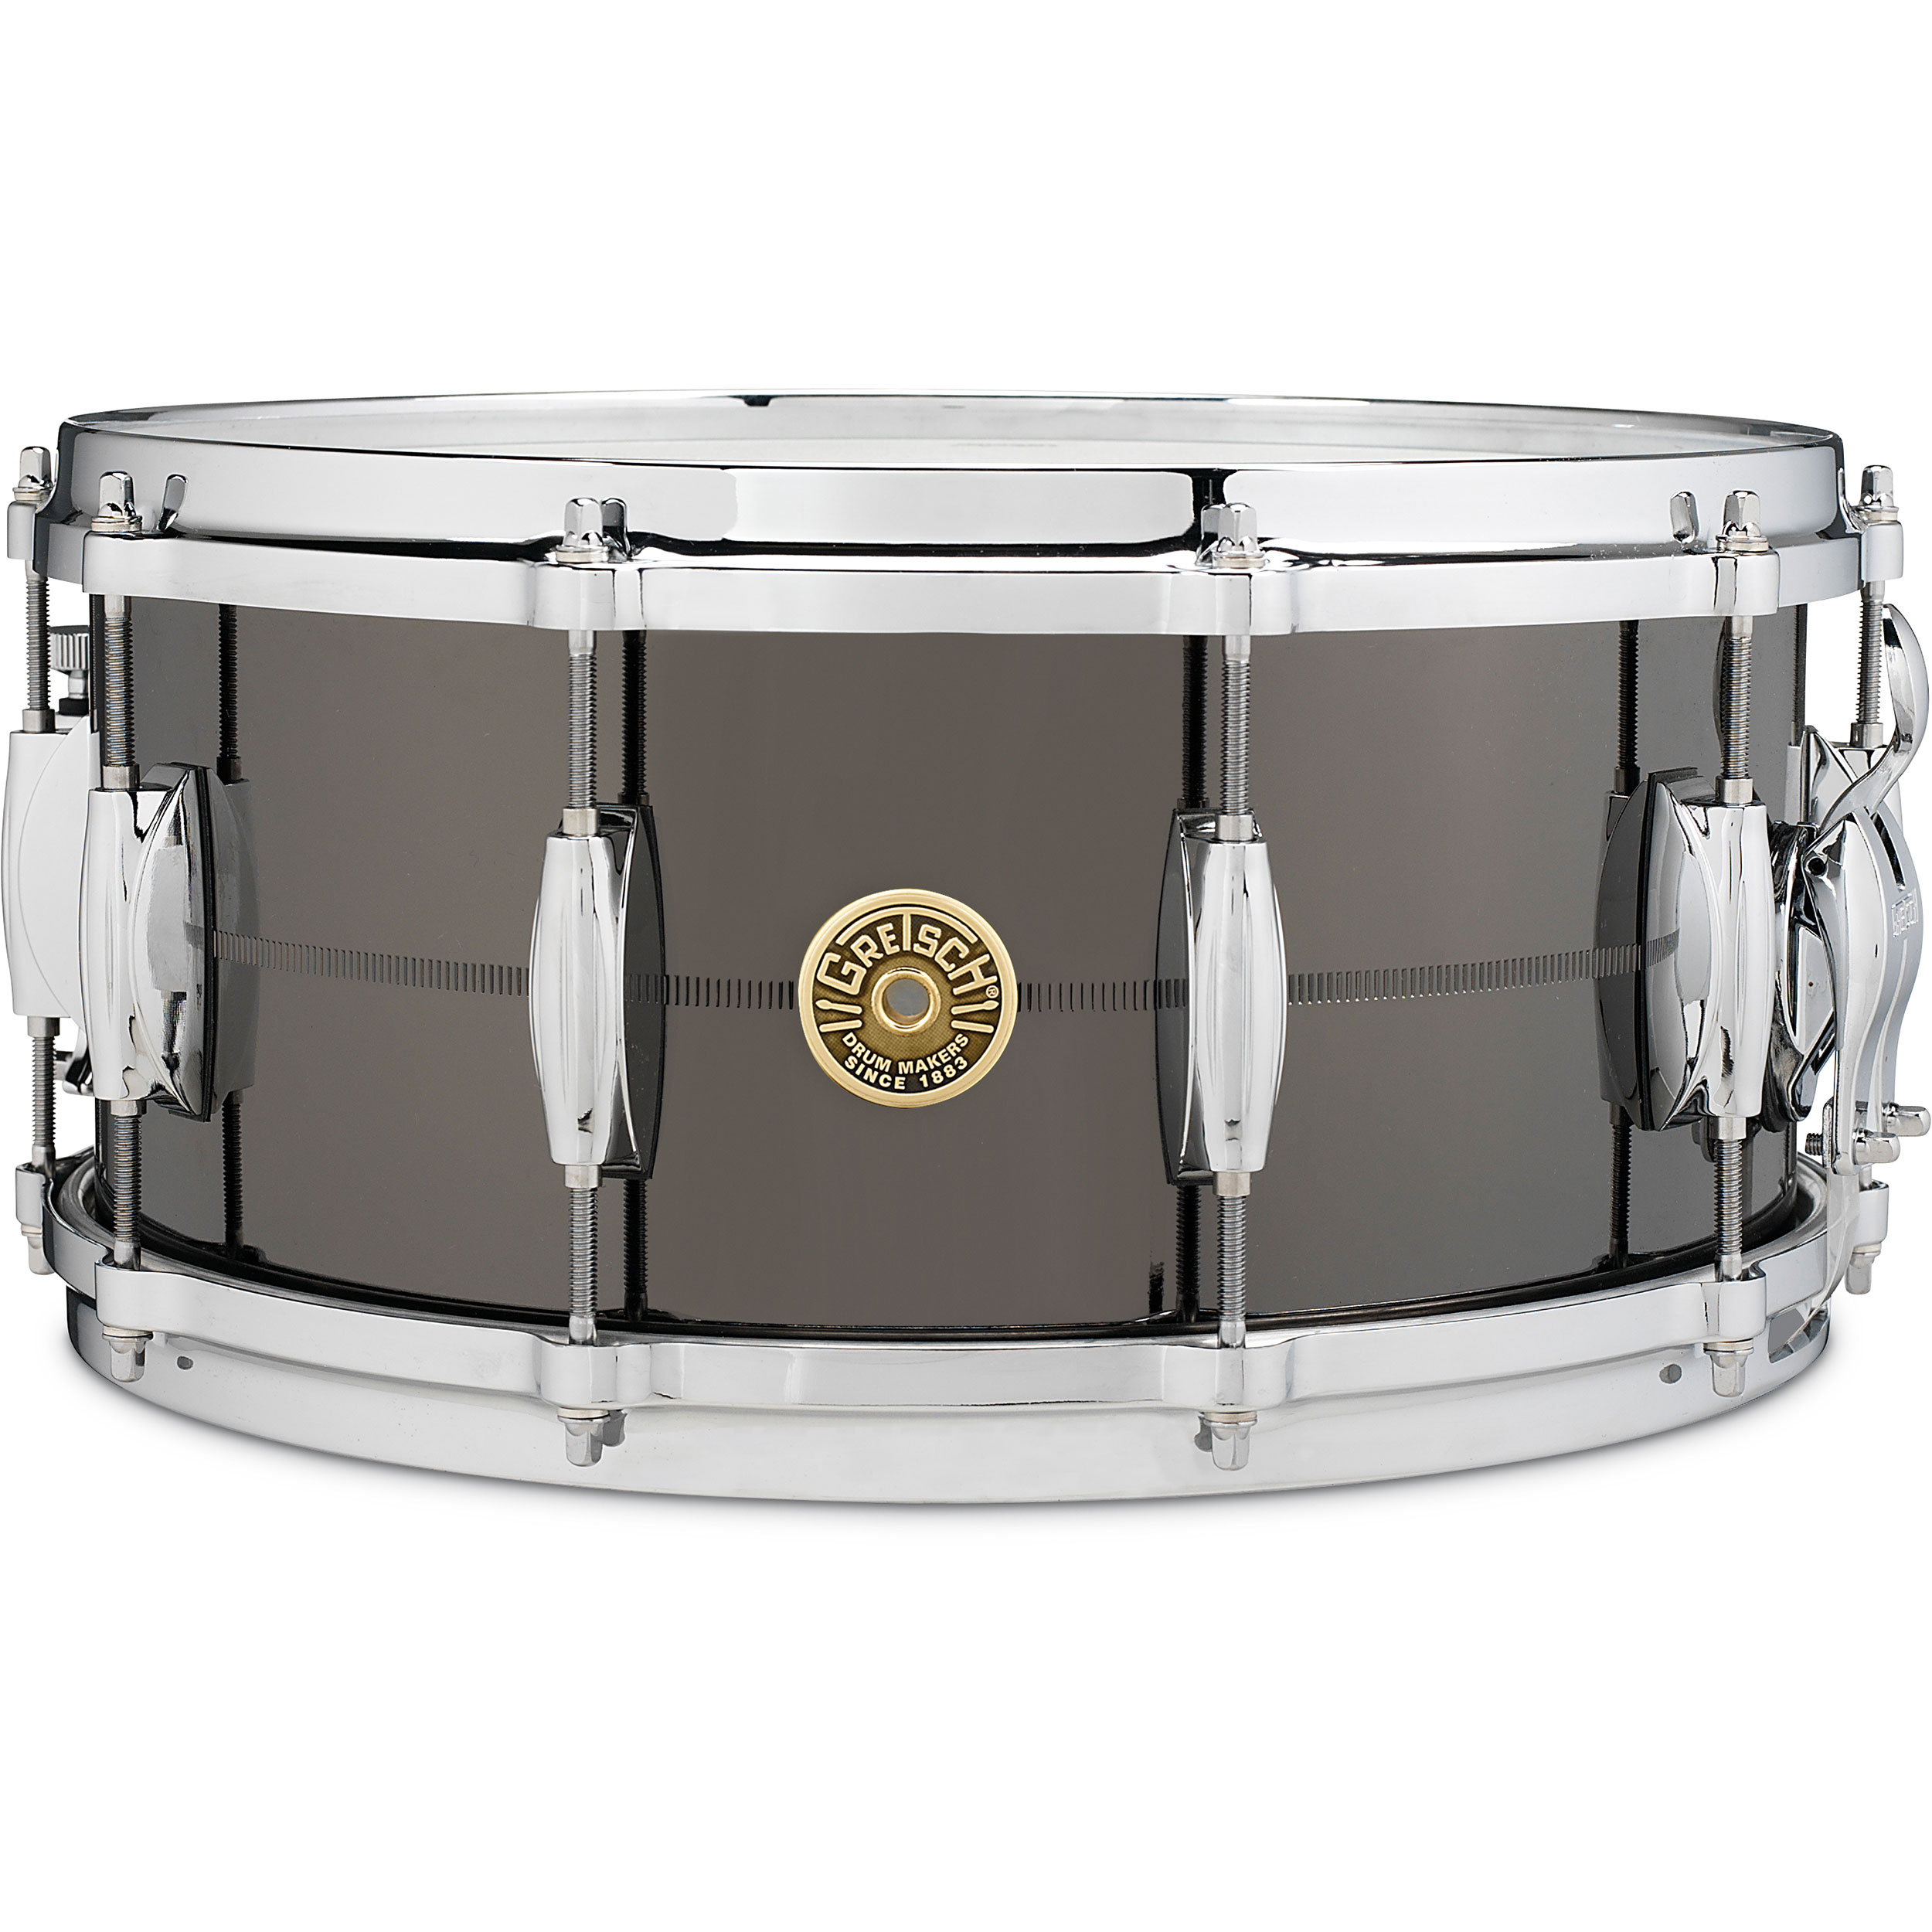 "Gretsch 6.5"" x 14"" USA Solid Cast Steel Snare Drum in Black Nickel"